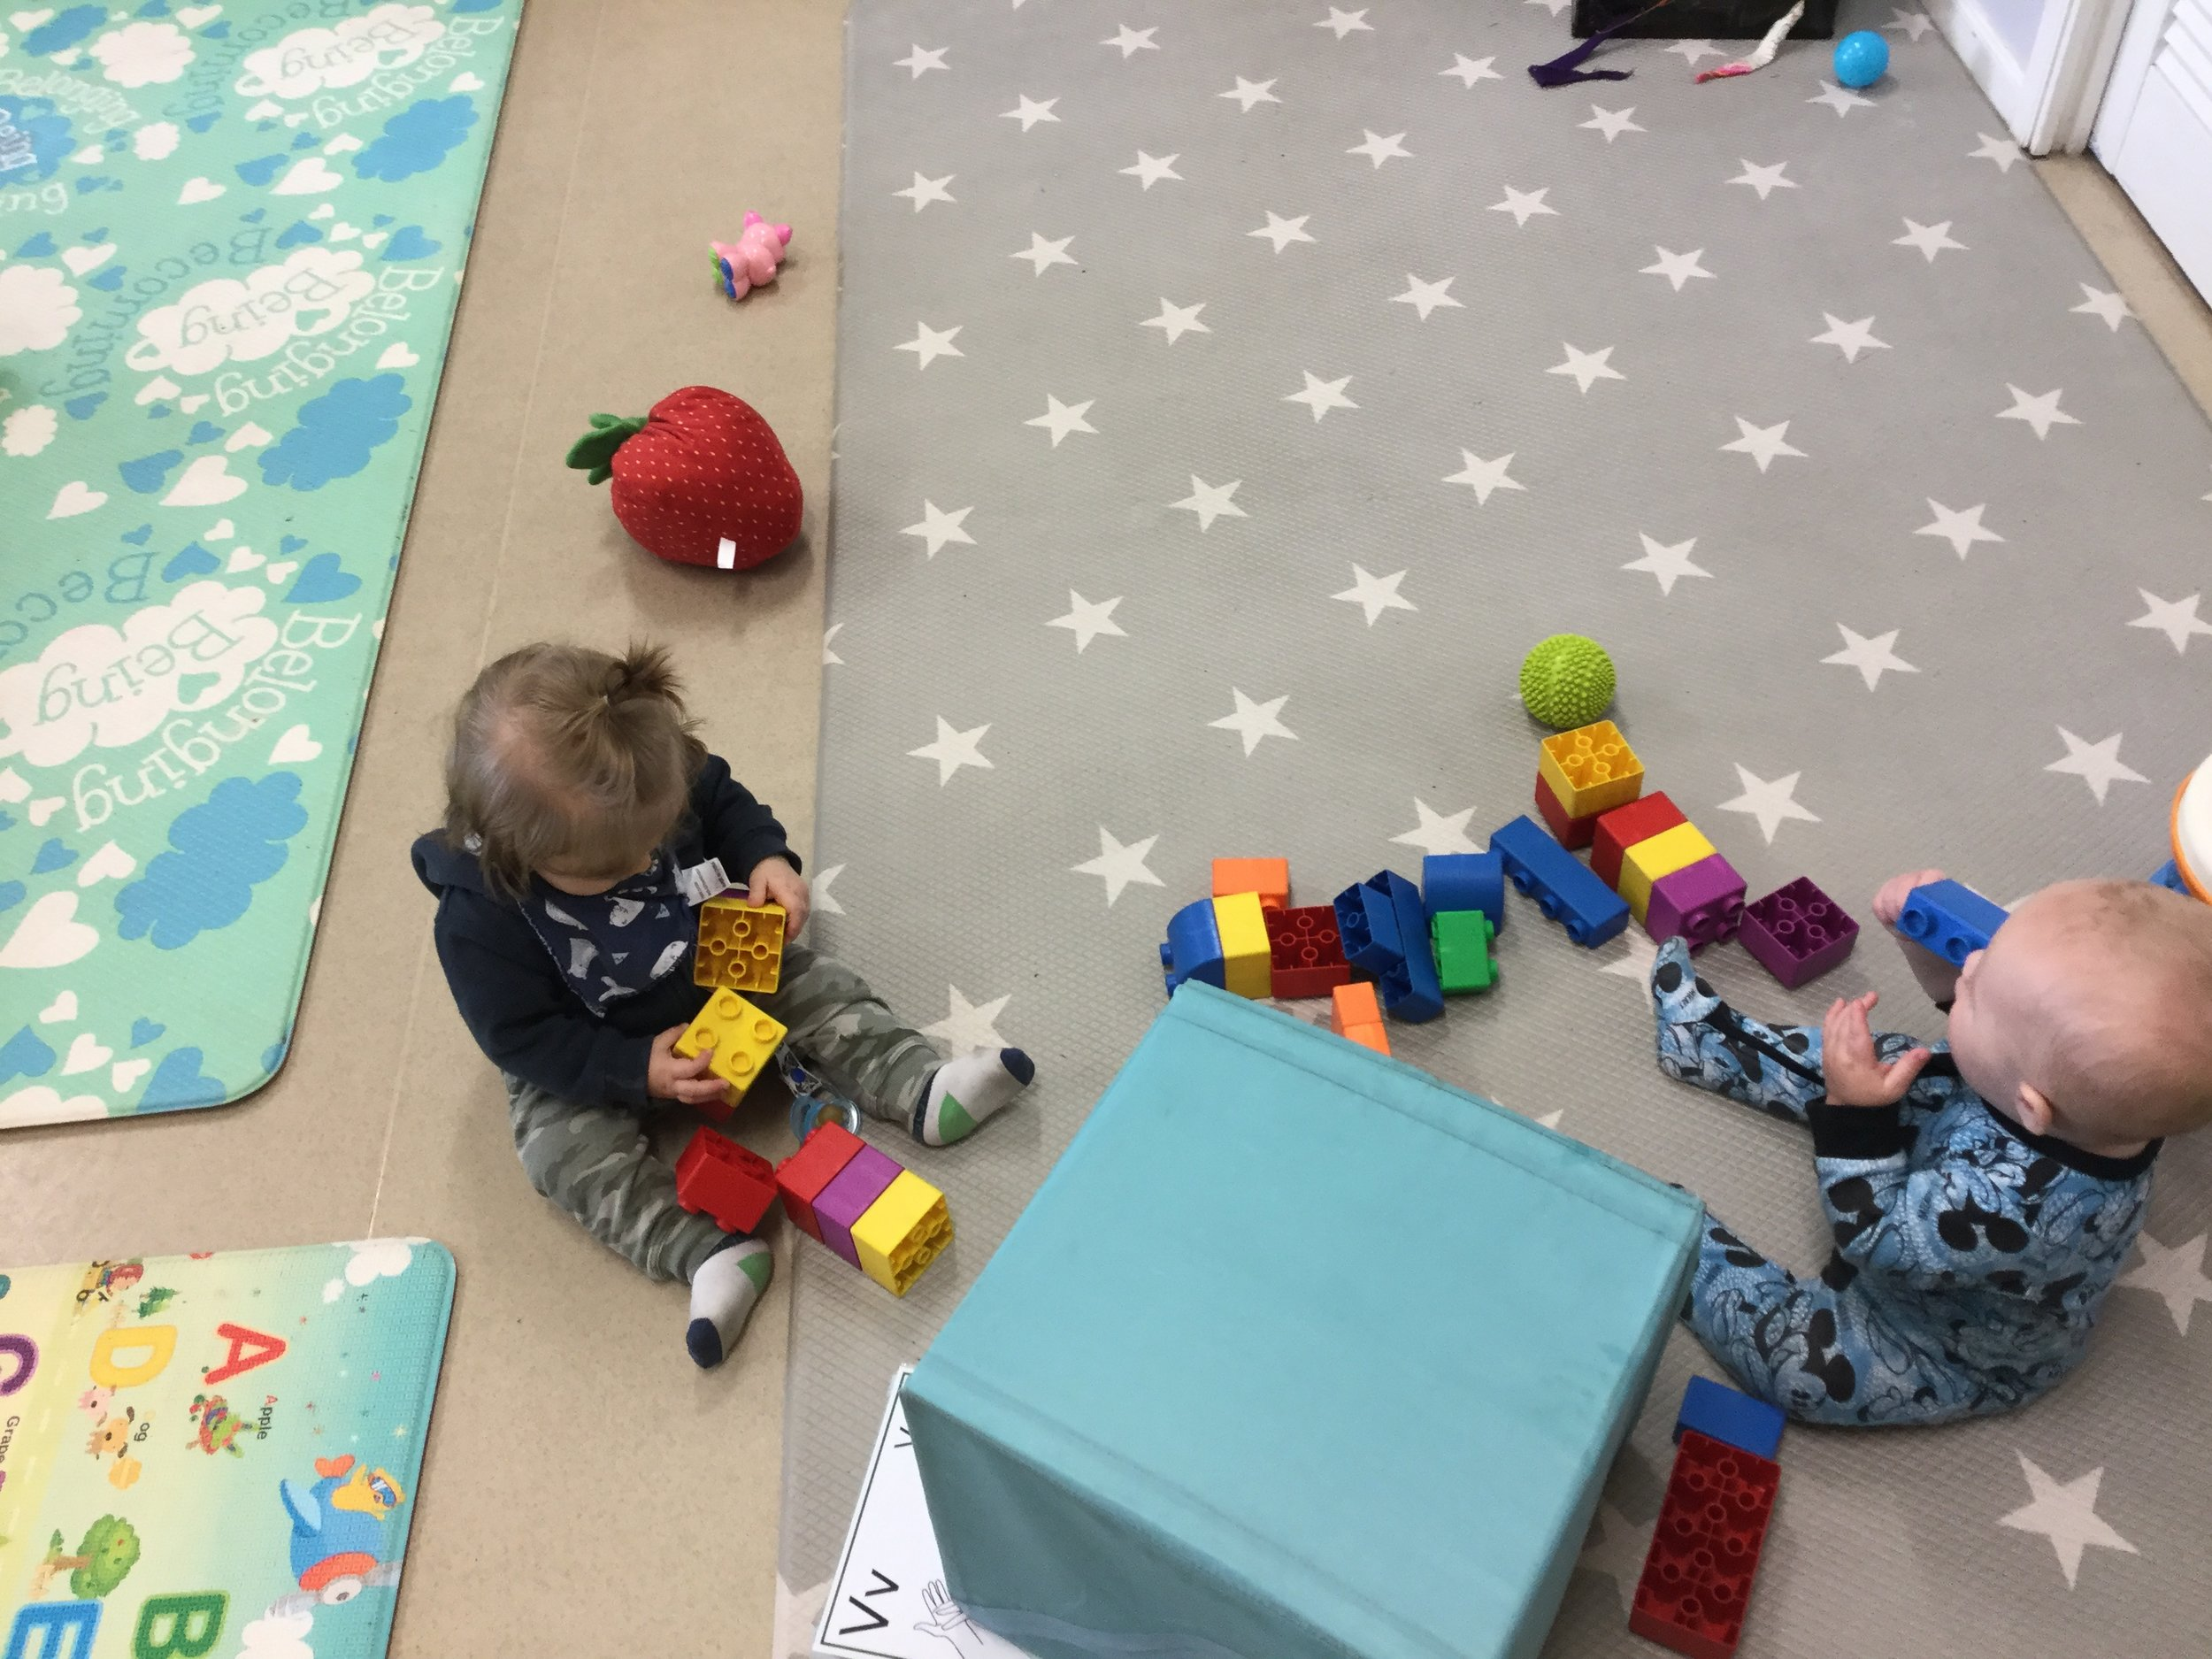 Care and playtime for babies